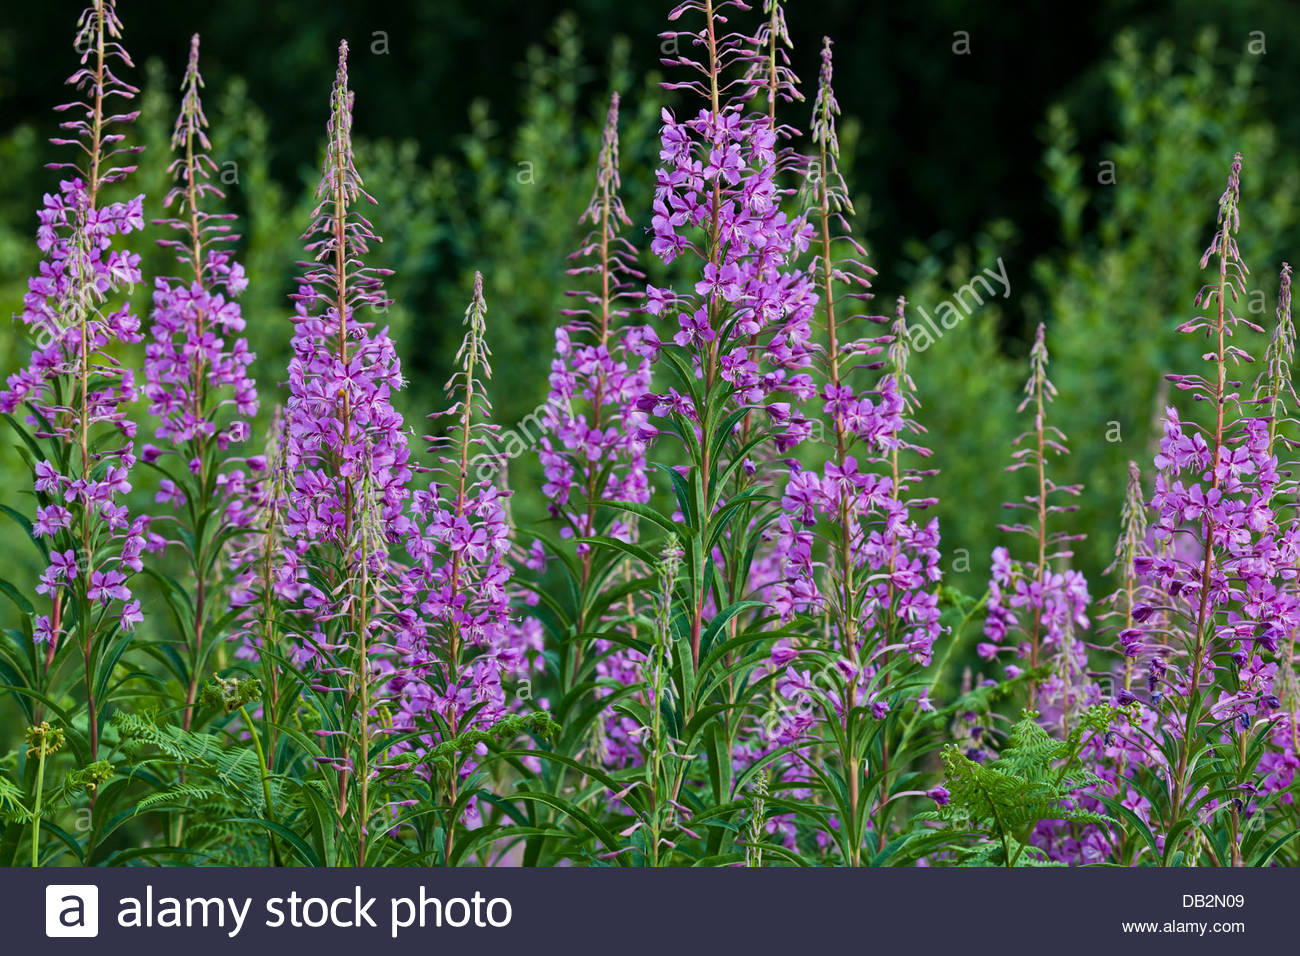 Purple willow weed stock photos purple willow weed stock images rosebay willow herb chamerion angustifolium summer flower wild native red purple perennial invasive garden weed mightylinksfo